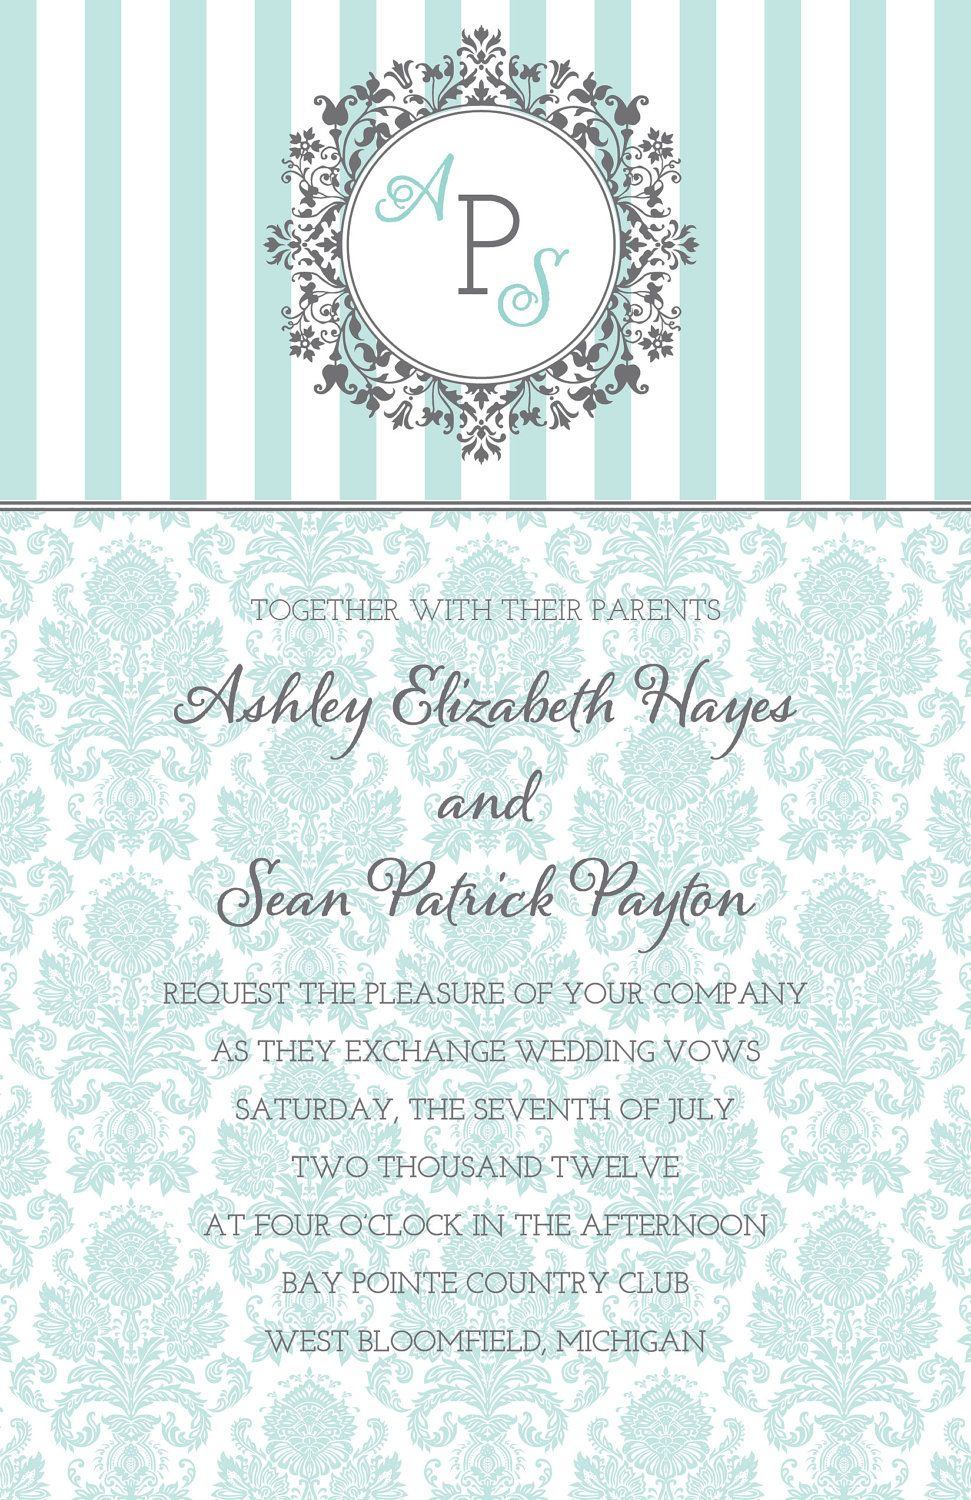 Monogram Tiffany Blue Damask Wedding Invitation Grey 2 50 Via